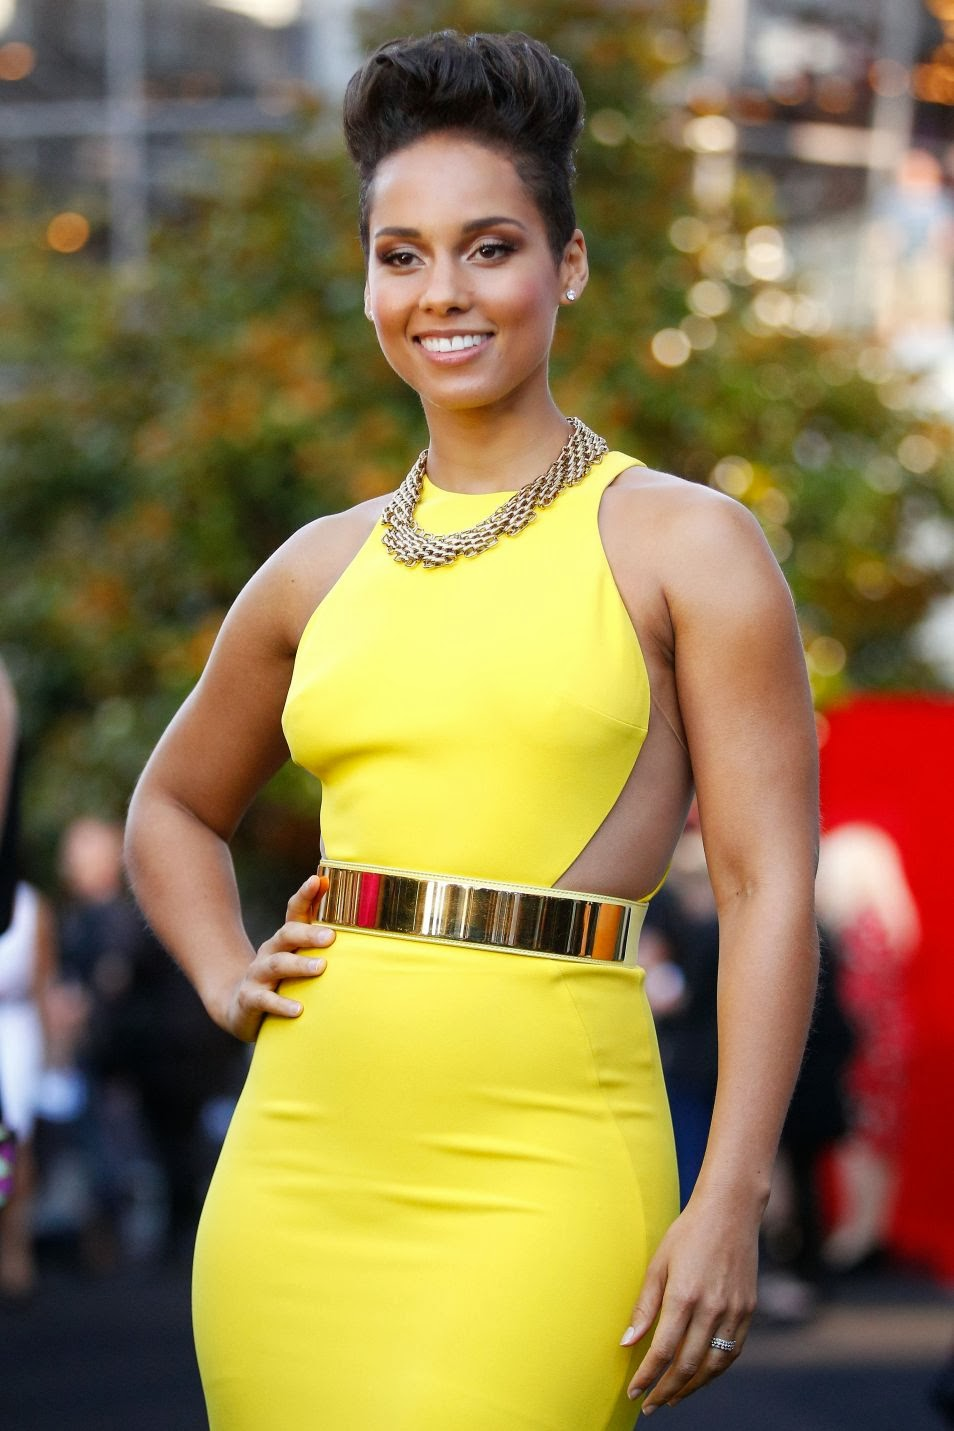 Gorgeous Alicia Keys at 27th Annual ARIA Awards 2013